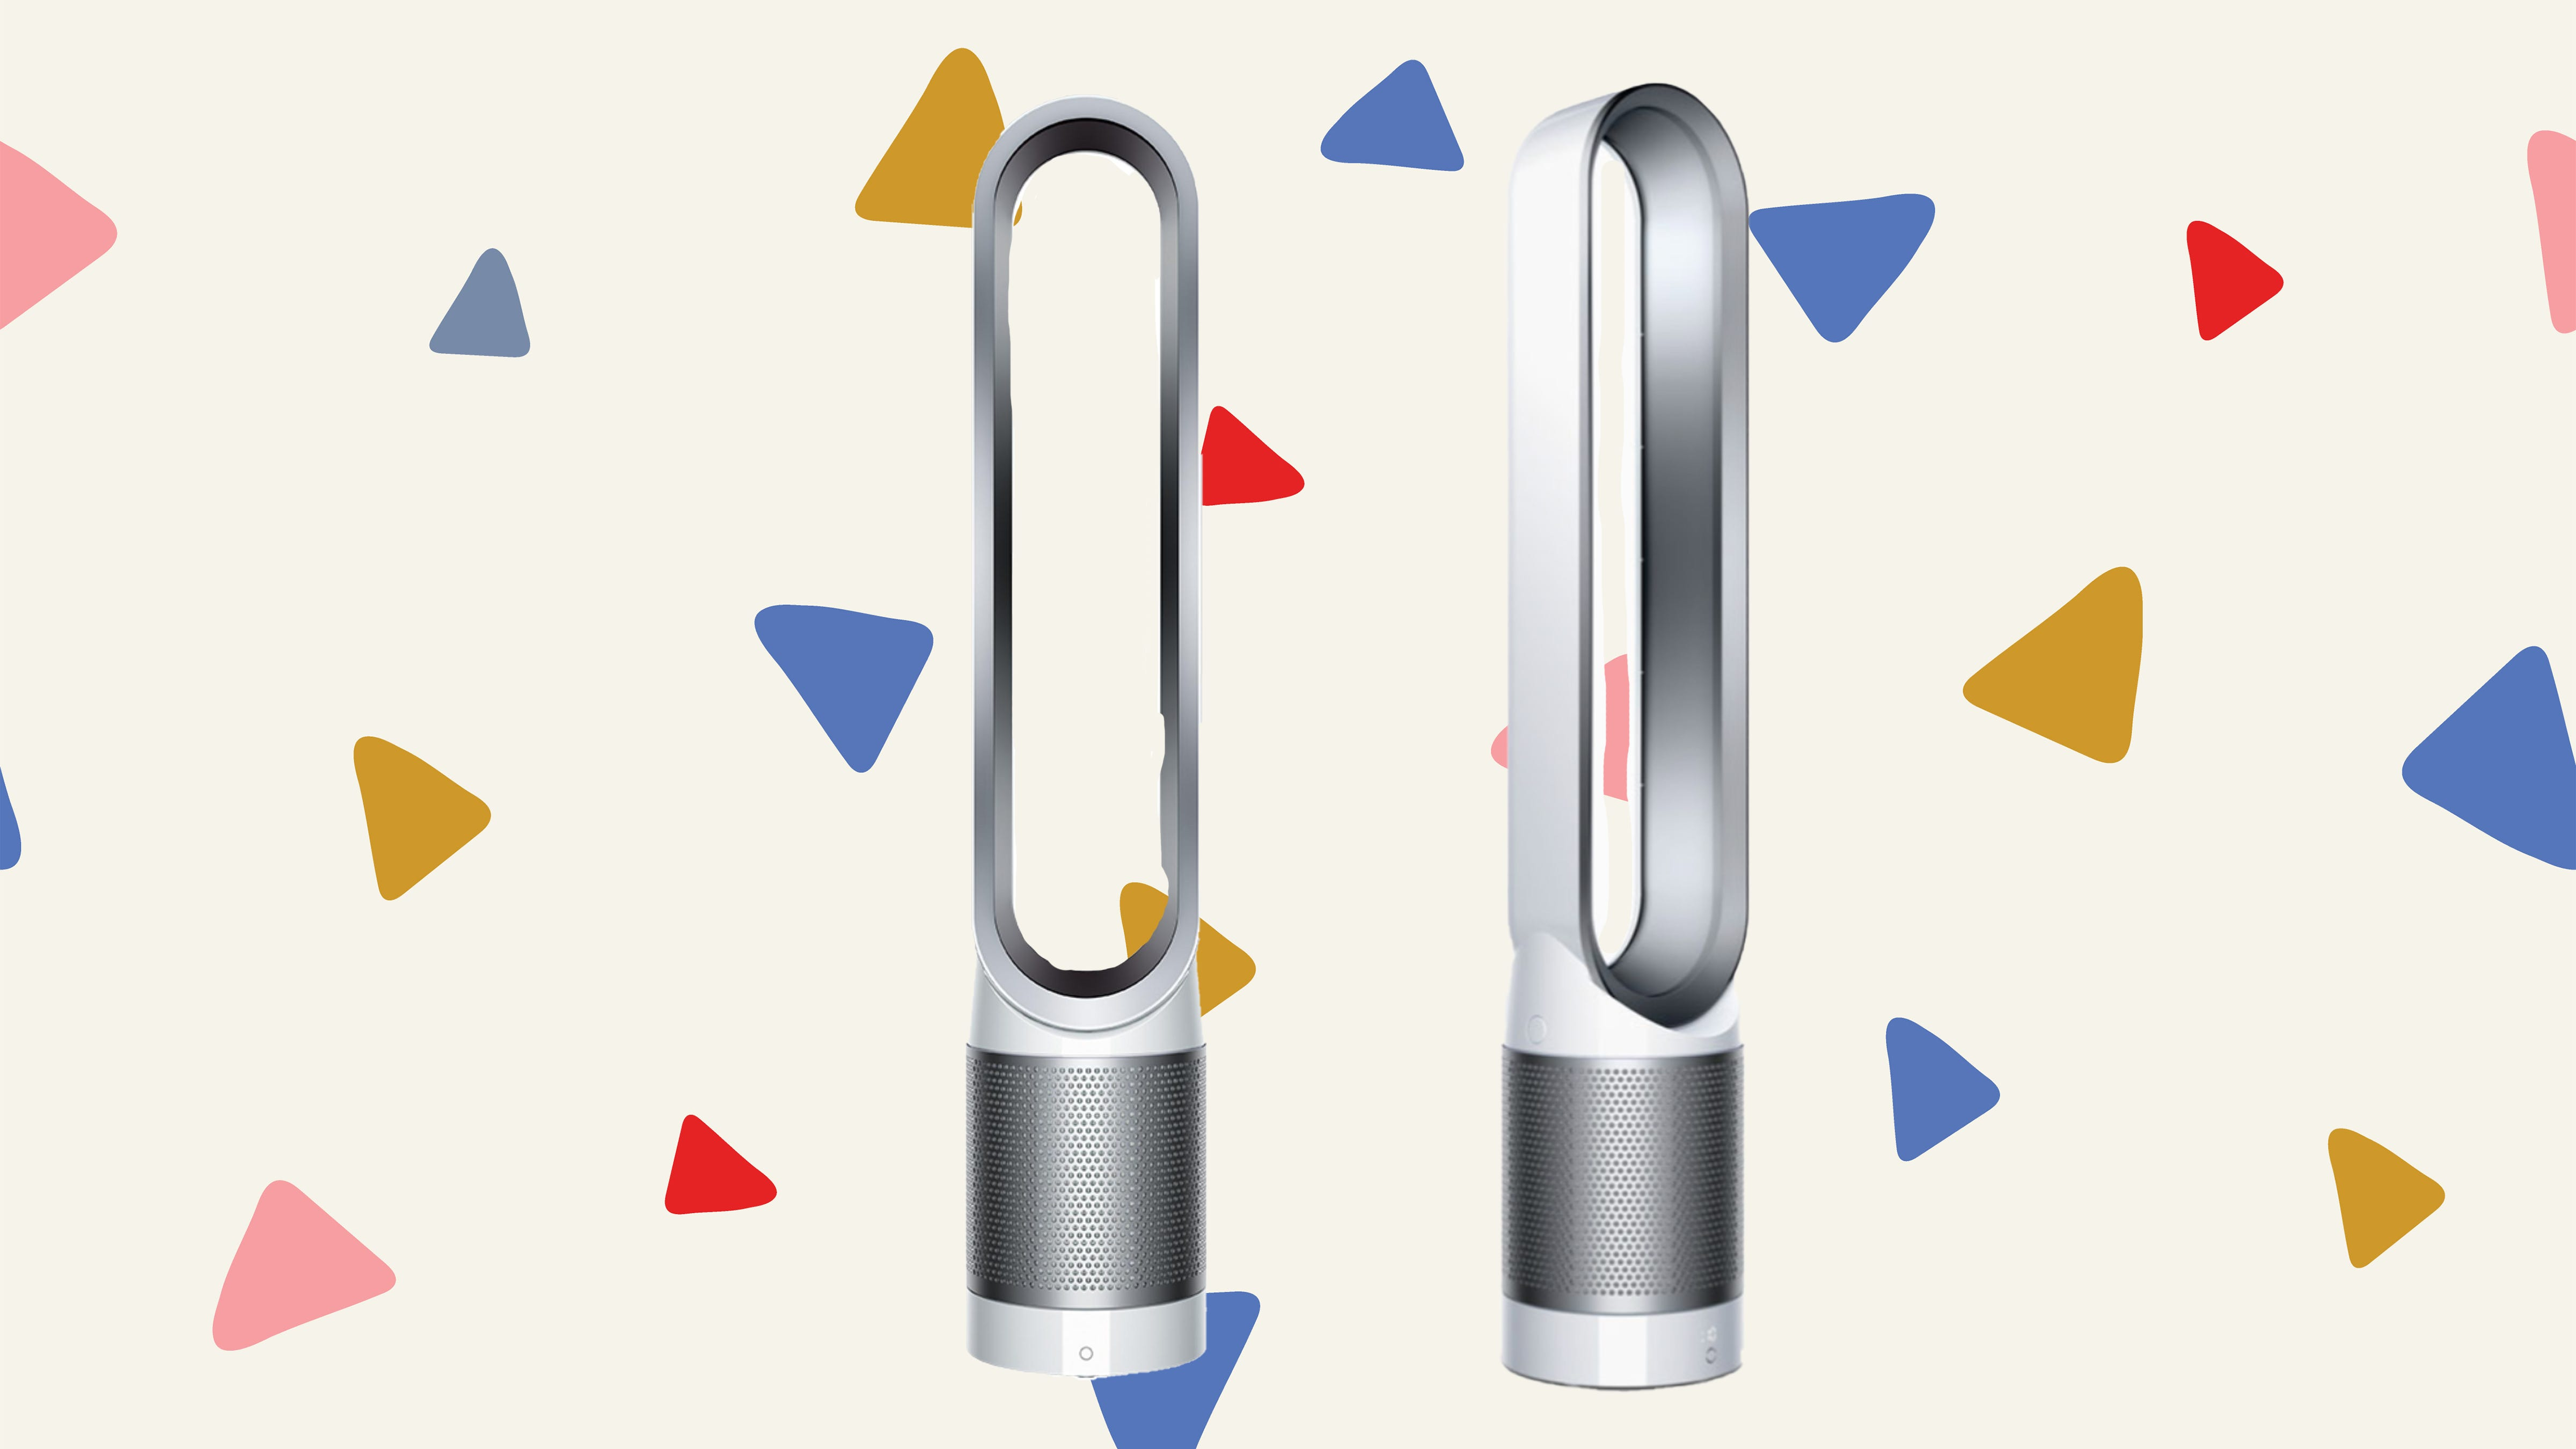 This crazy popular Dyson air purifier is $100 off right now